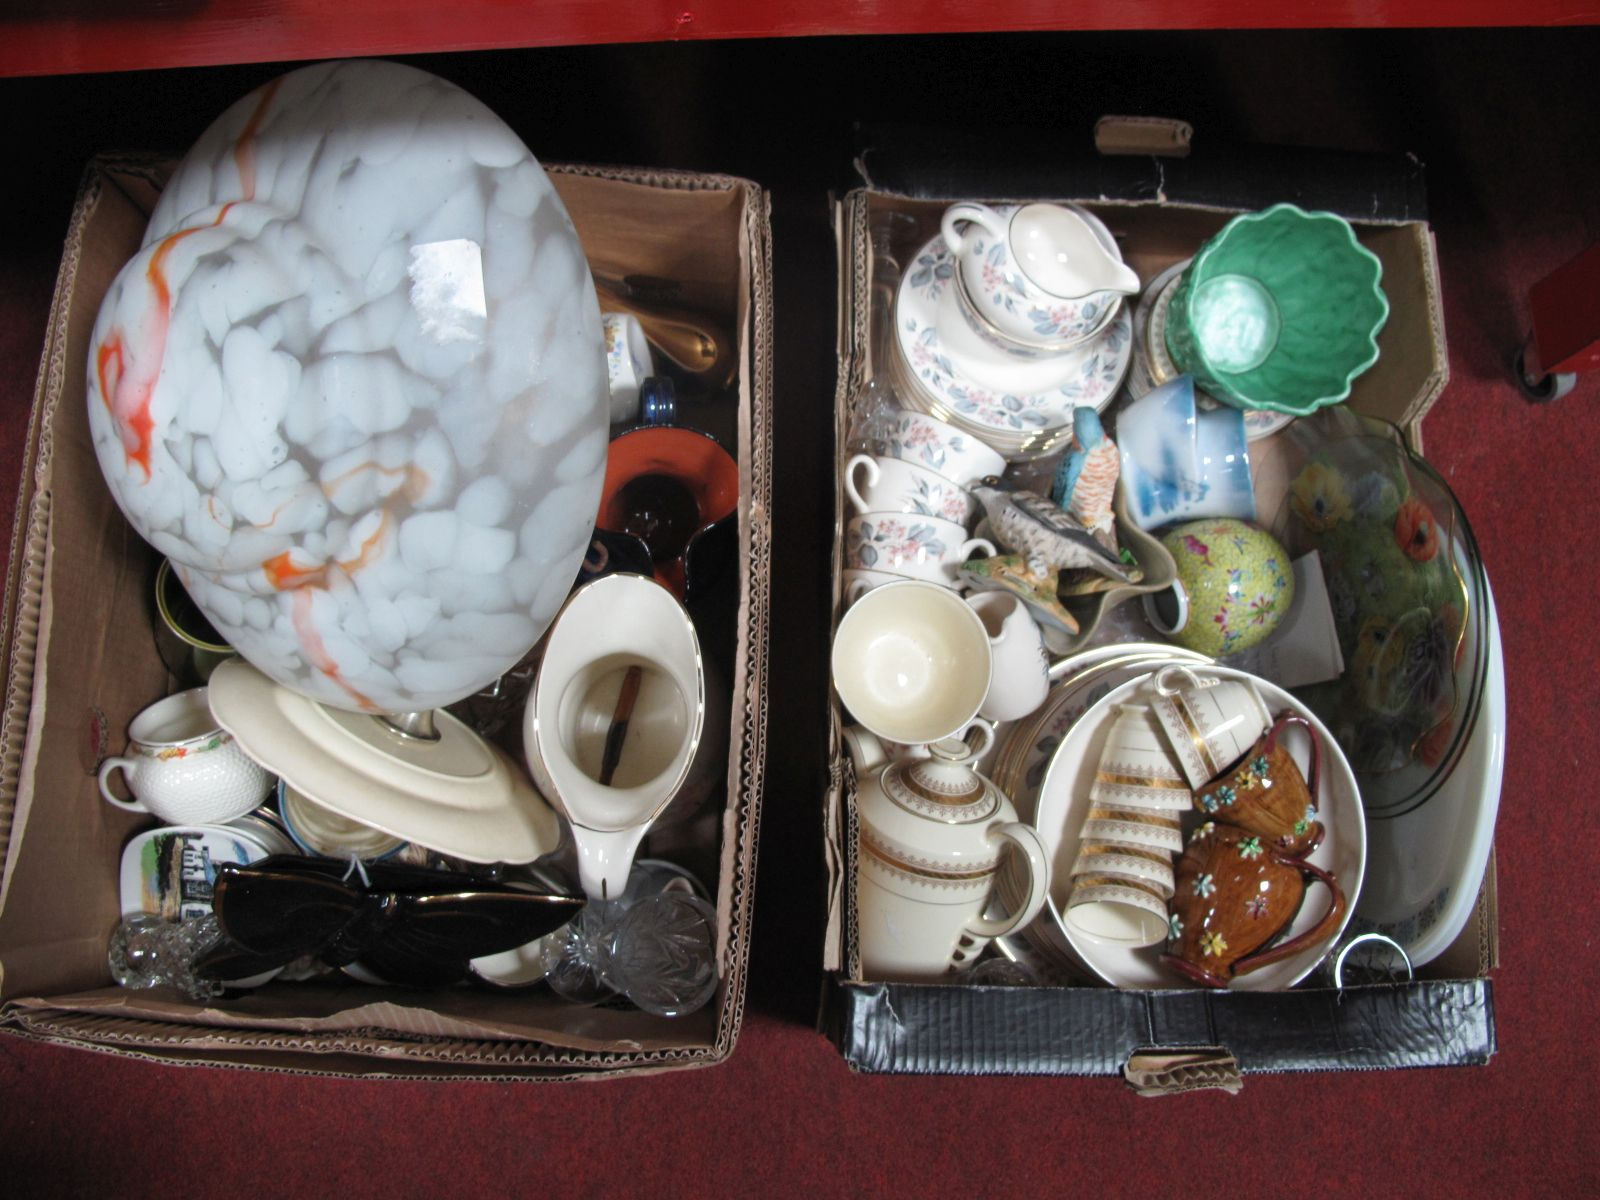 Lot 38 - A Mottled Glass Ceiling Light Shade, Newhall cottage ware, Ducal dinner ware, other ceramics:- Two